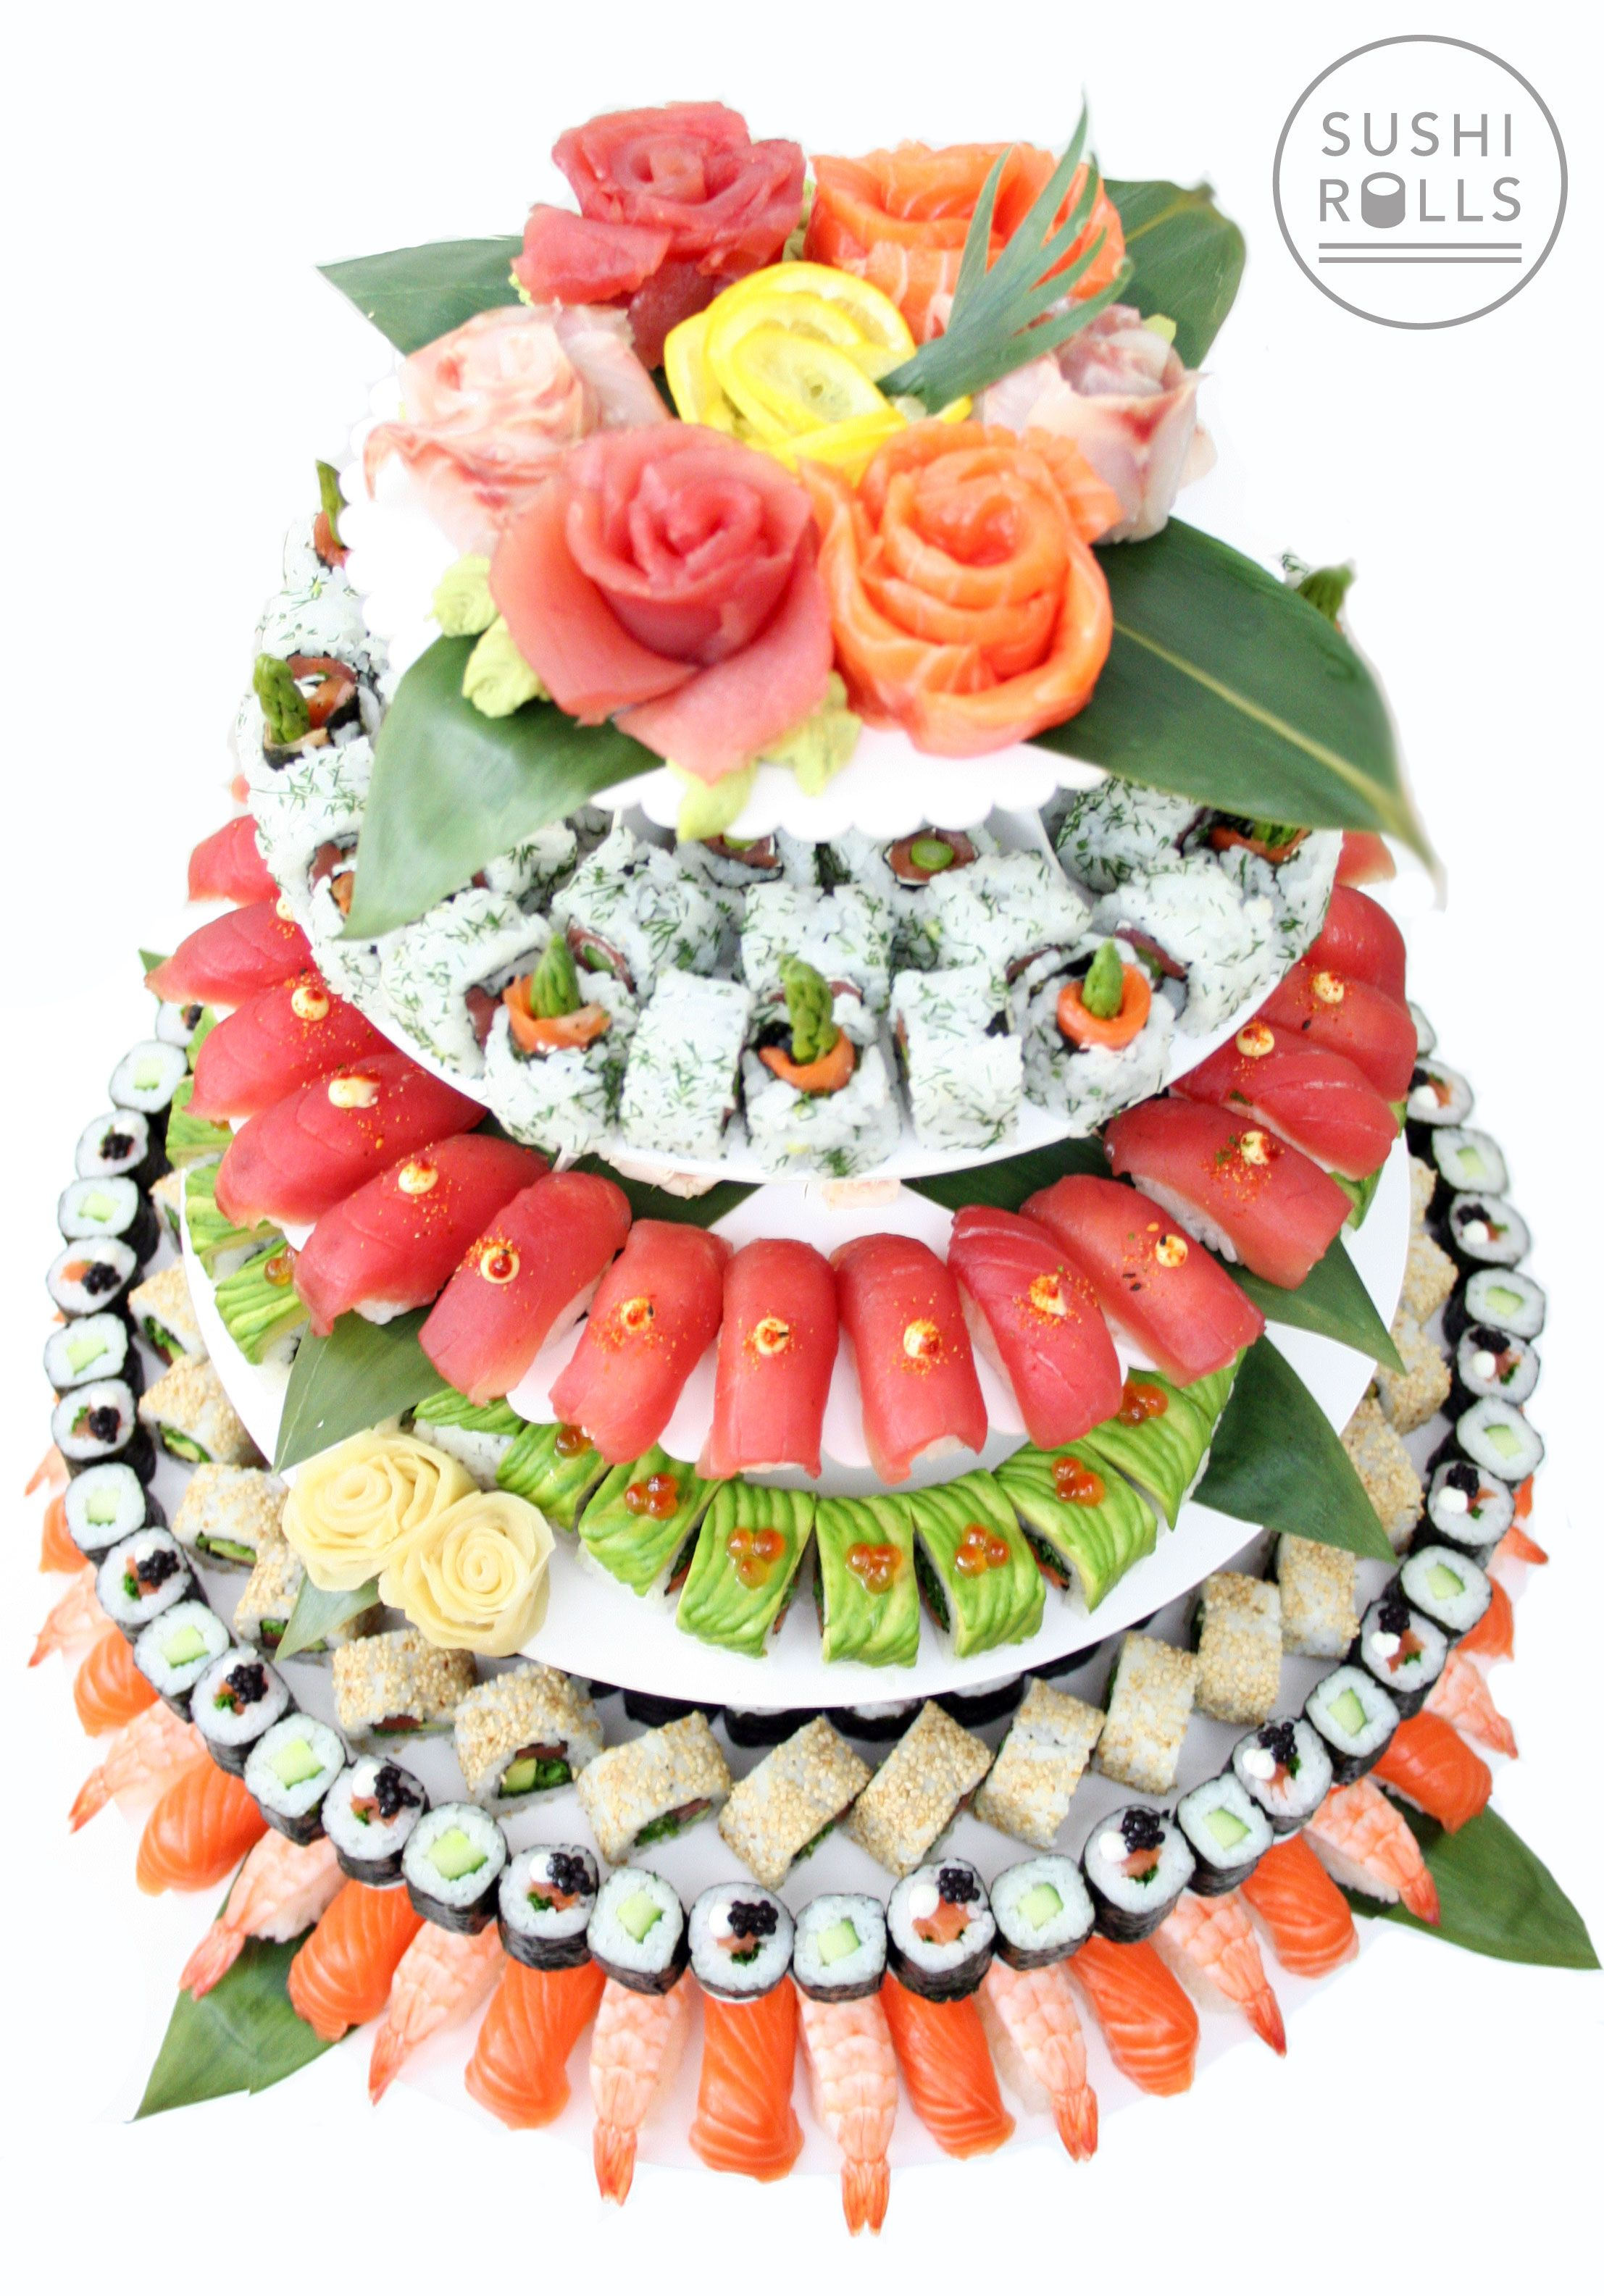 Sushi Wedding Cake from sushirolls.co.uk. A sushi catering